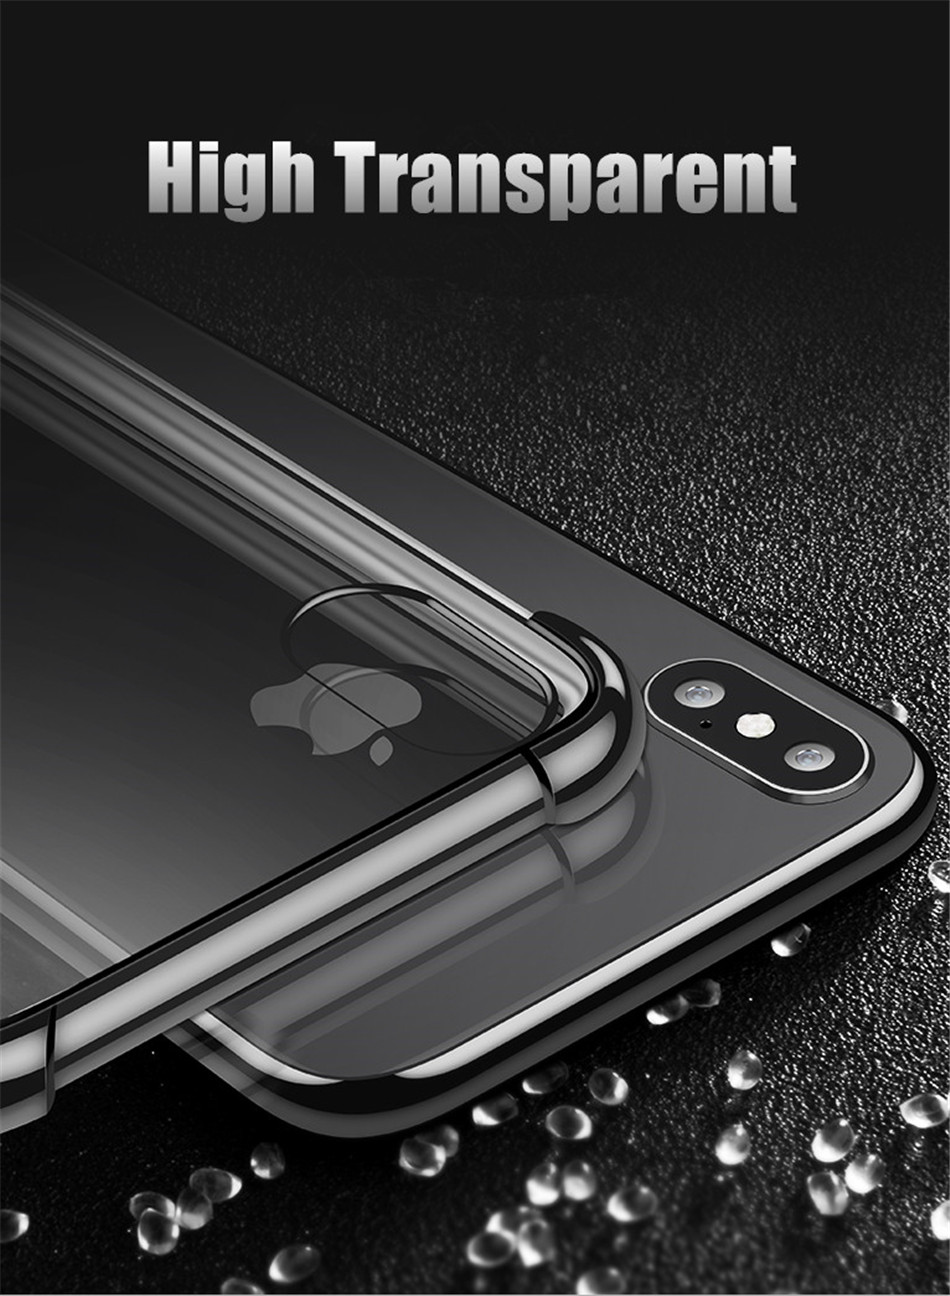 He65671490fd94fc2b31be1c76cc07b73j - USLION Shockproof Armor Clear Case For iPhone 11 Pro Max XS Max XR X 8 7 6 6s Plus 5 5s SE Transparent Phone Cases Airbag Cover